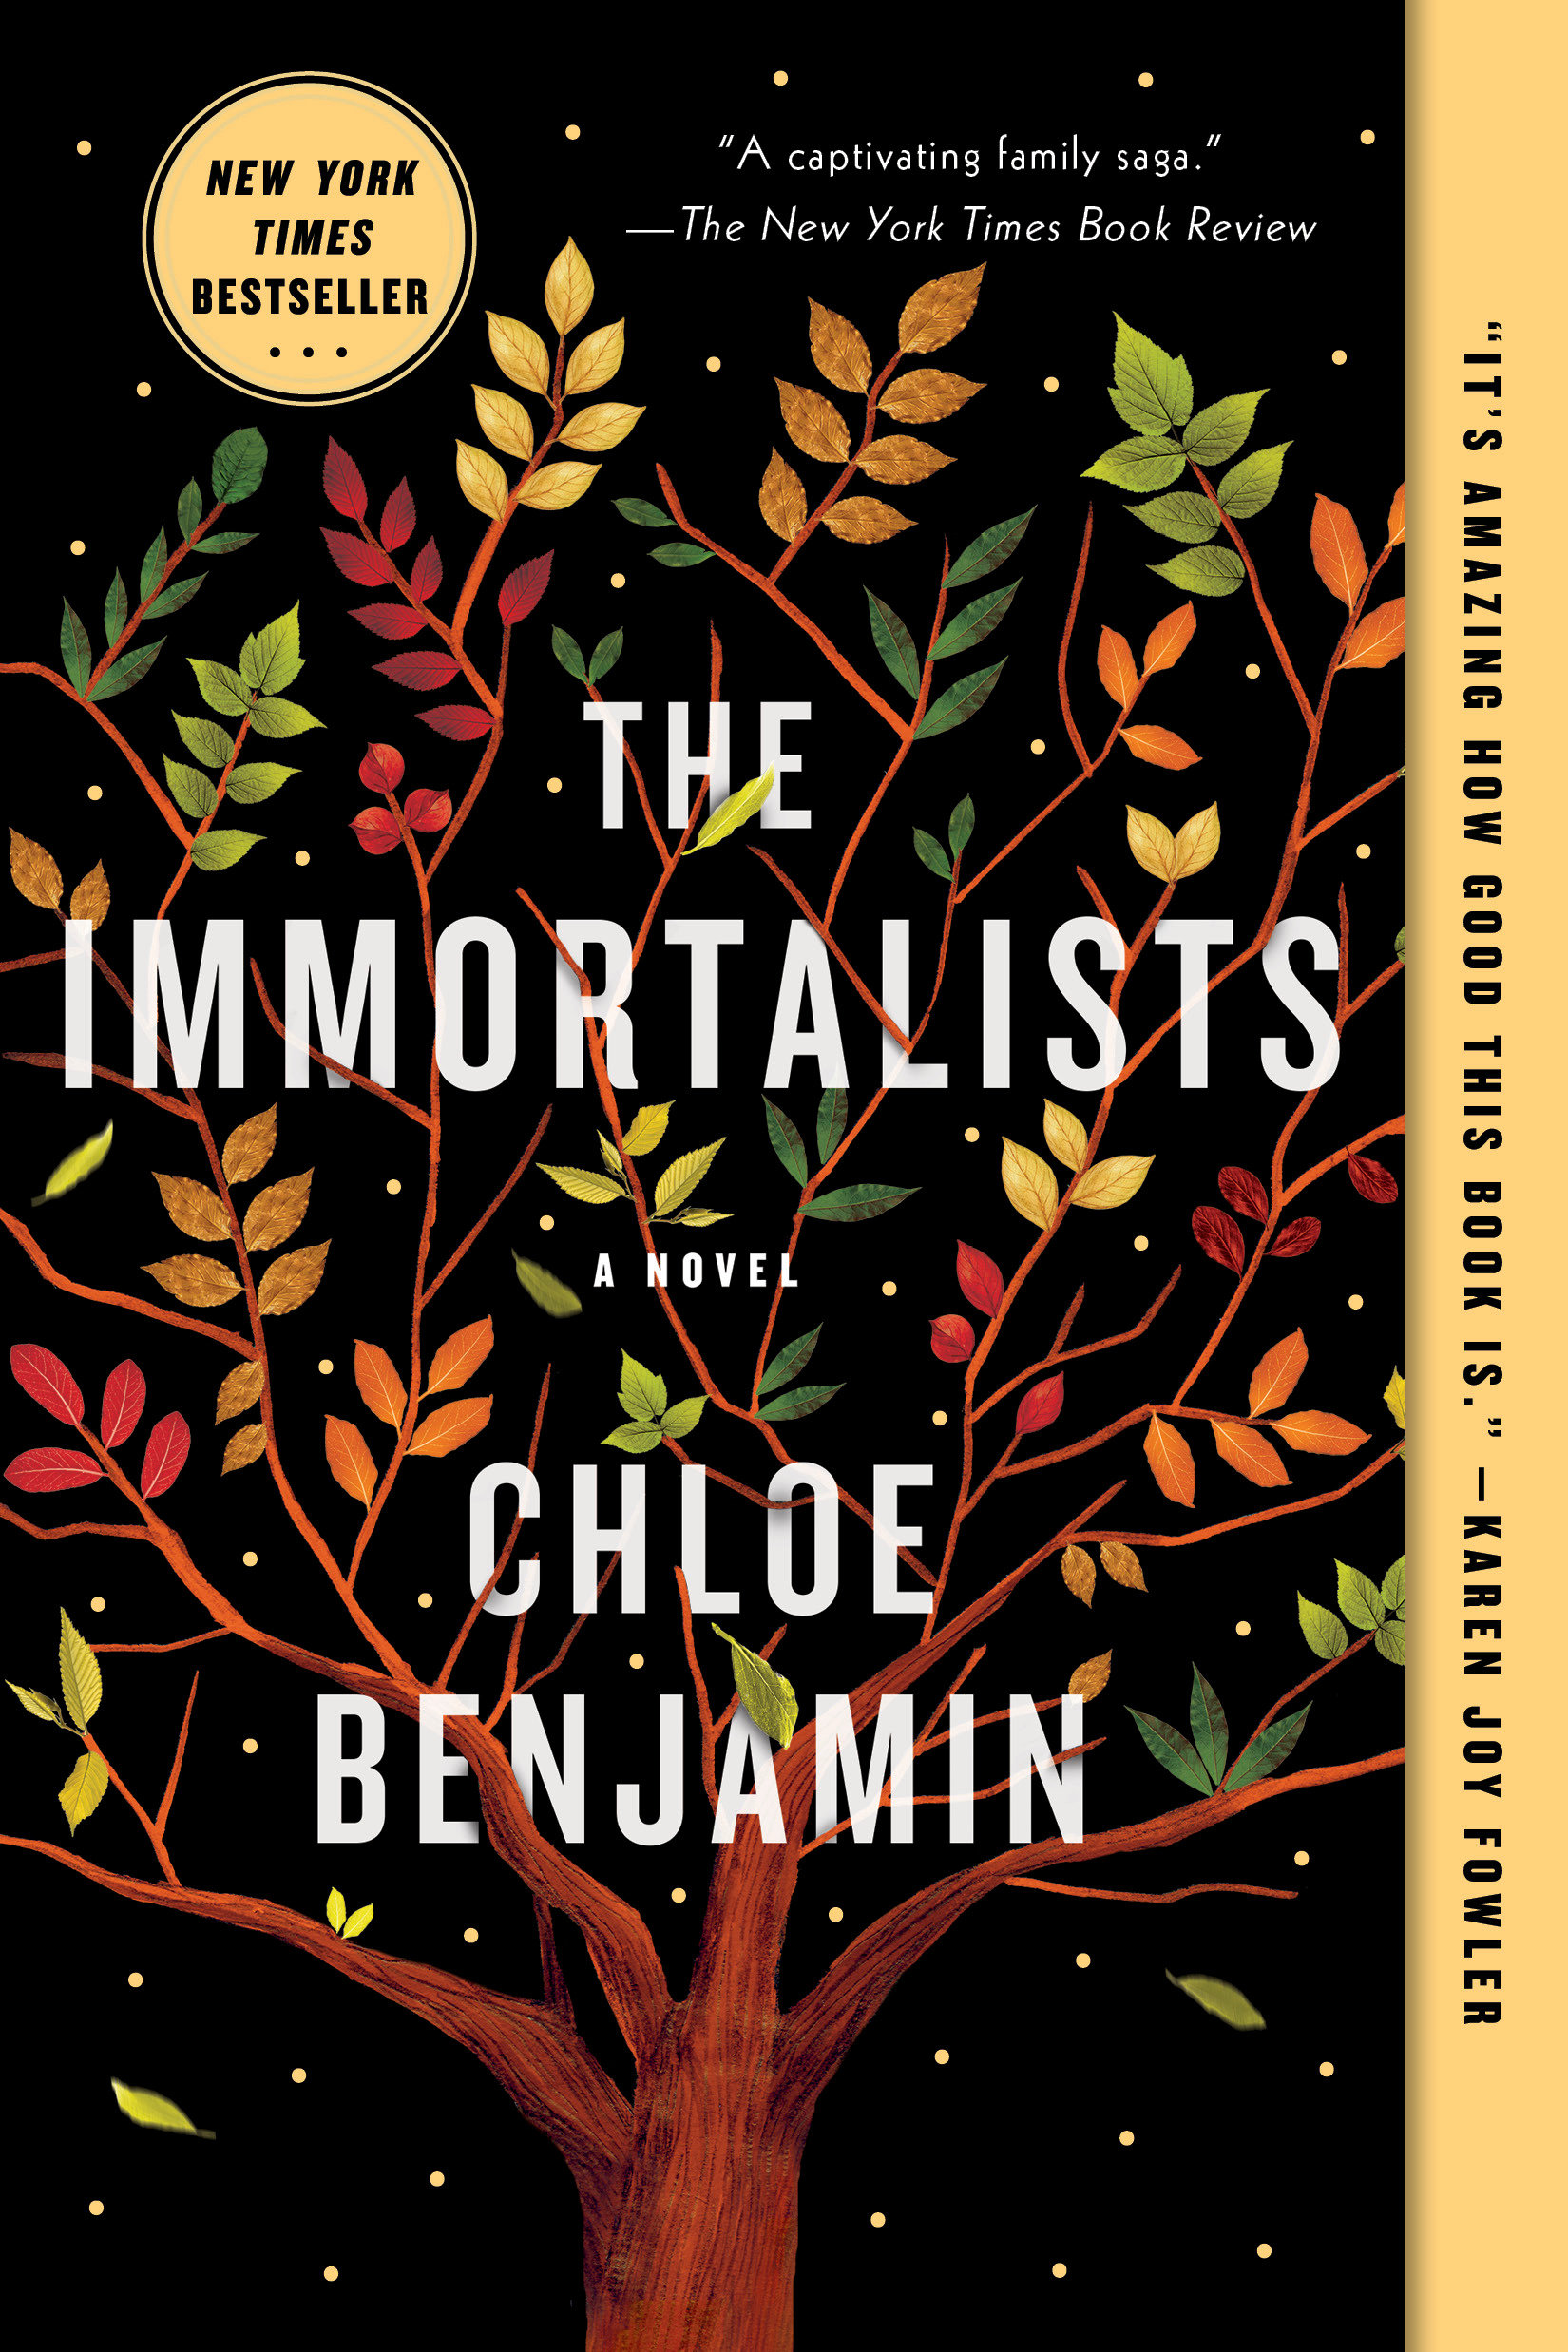 Image: The Immortalists